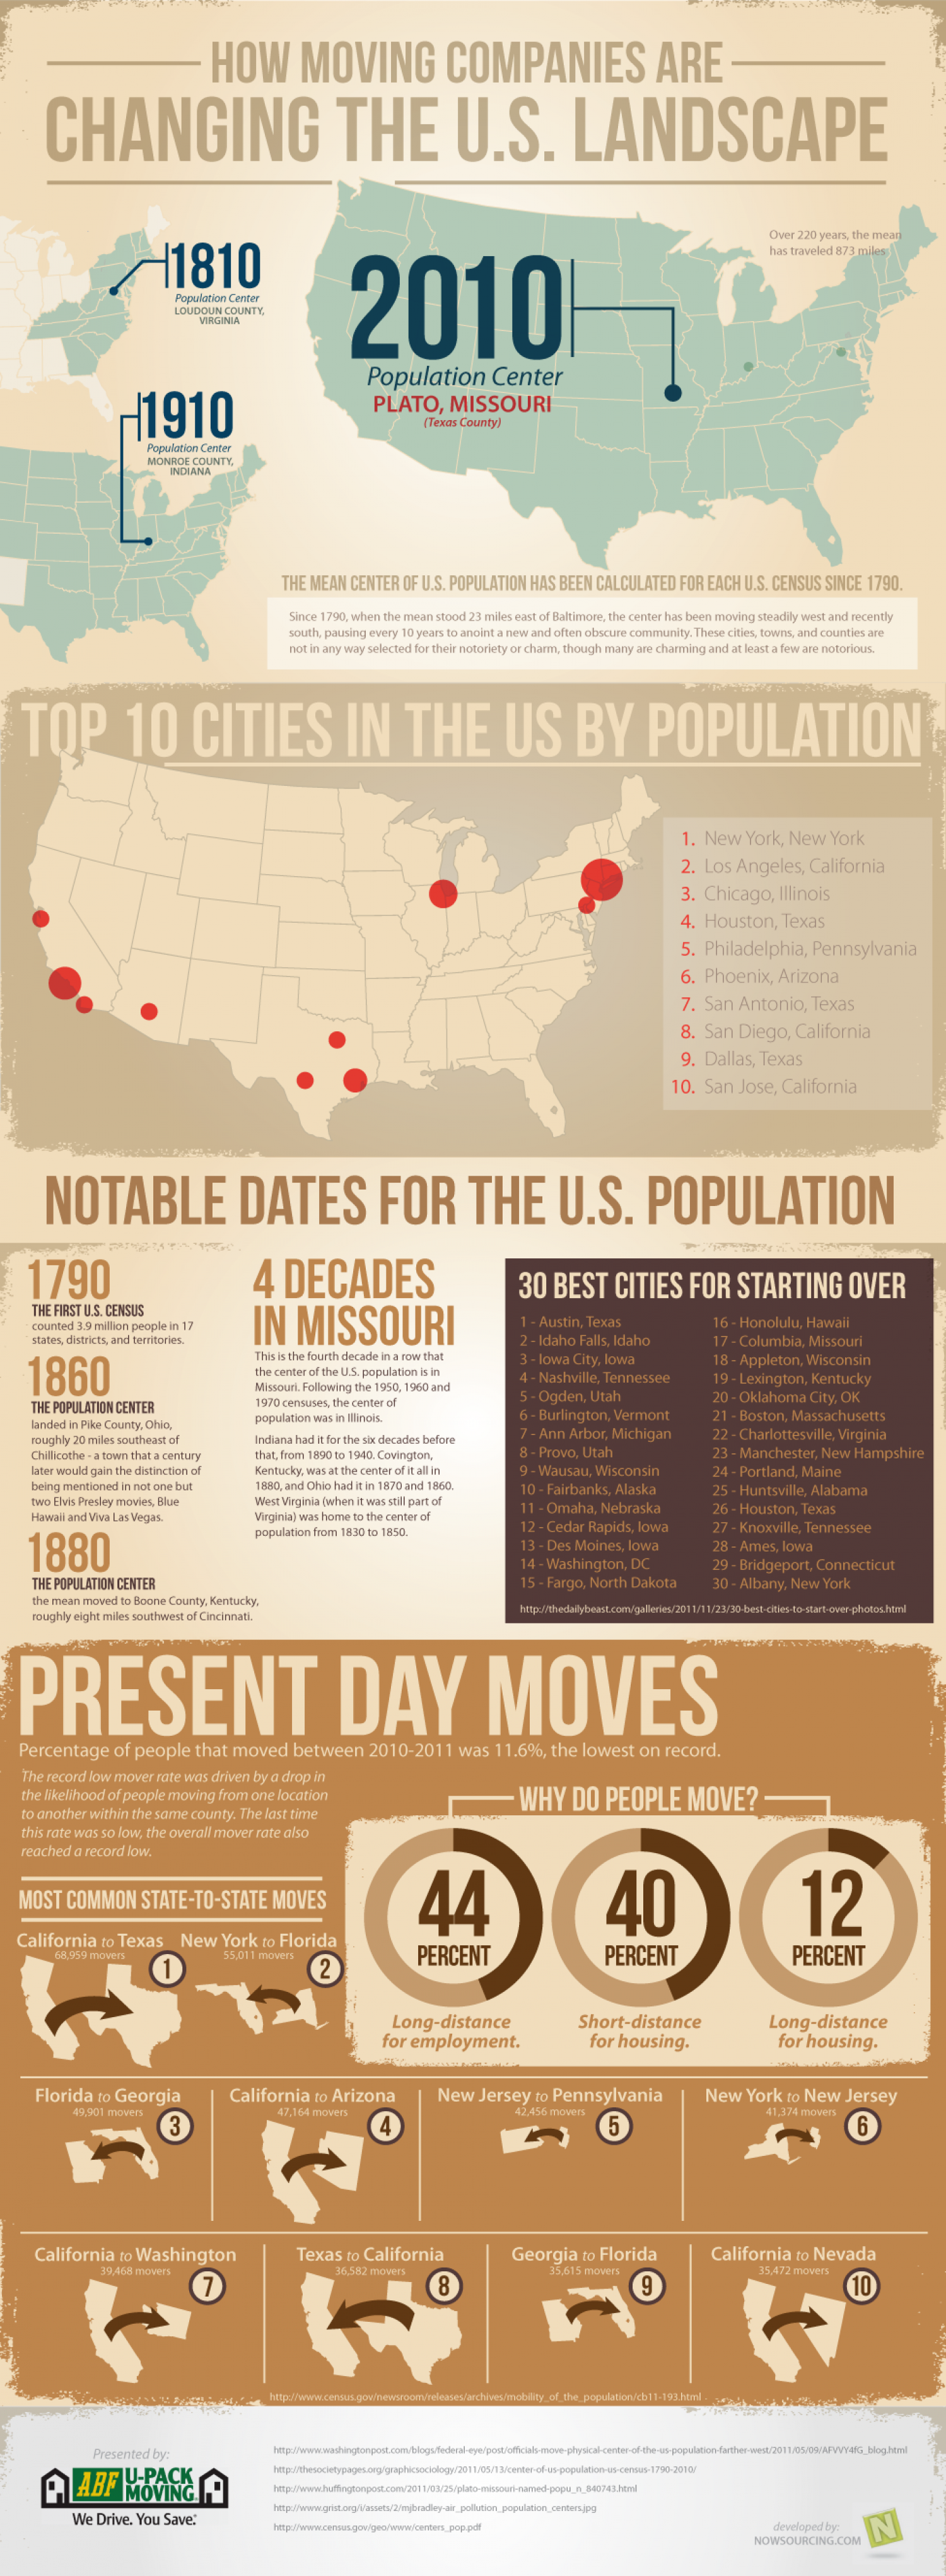 How Moving Companies are Changing the U.S. Landscape Infographic